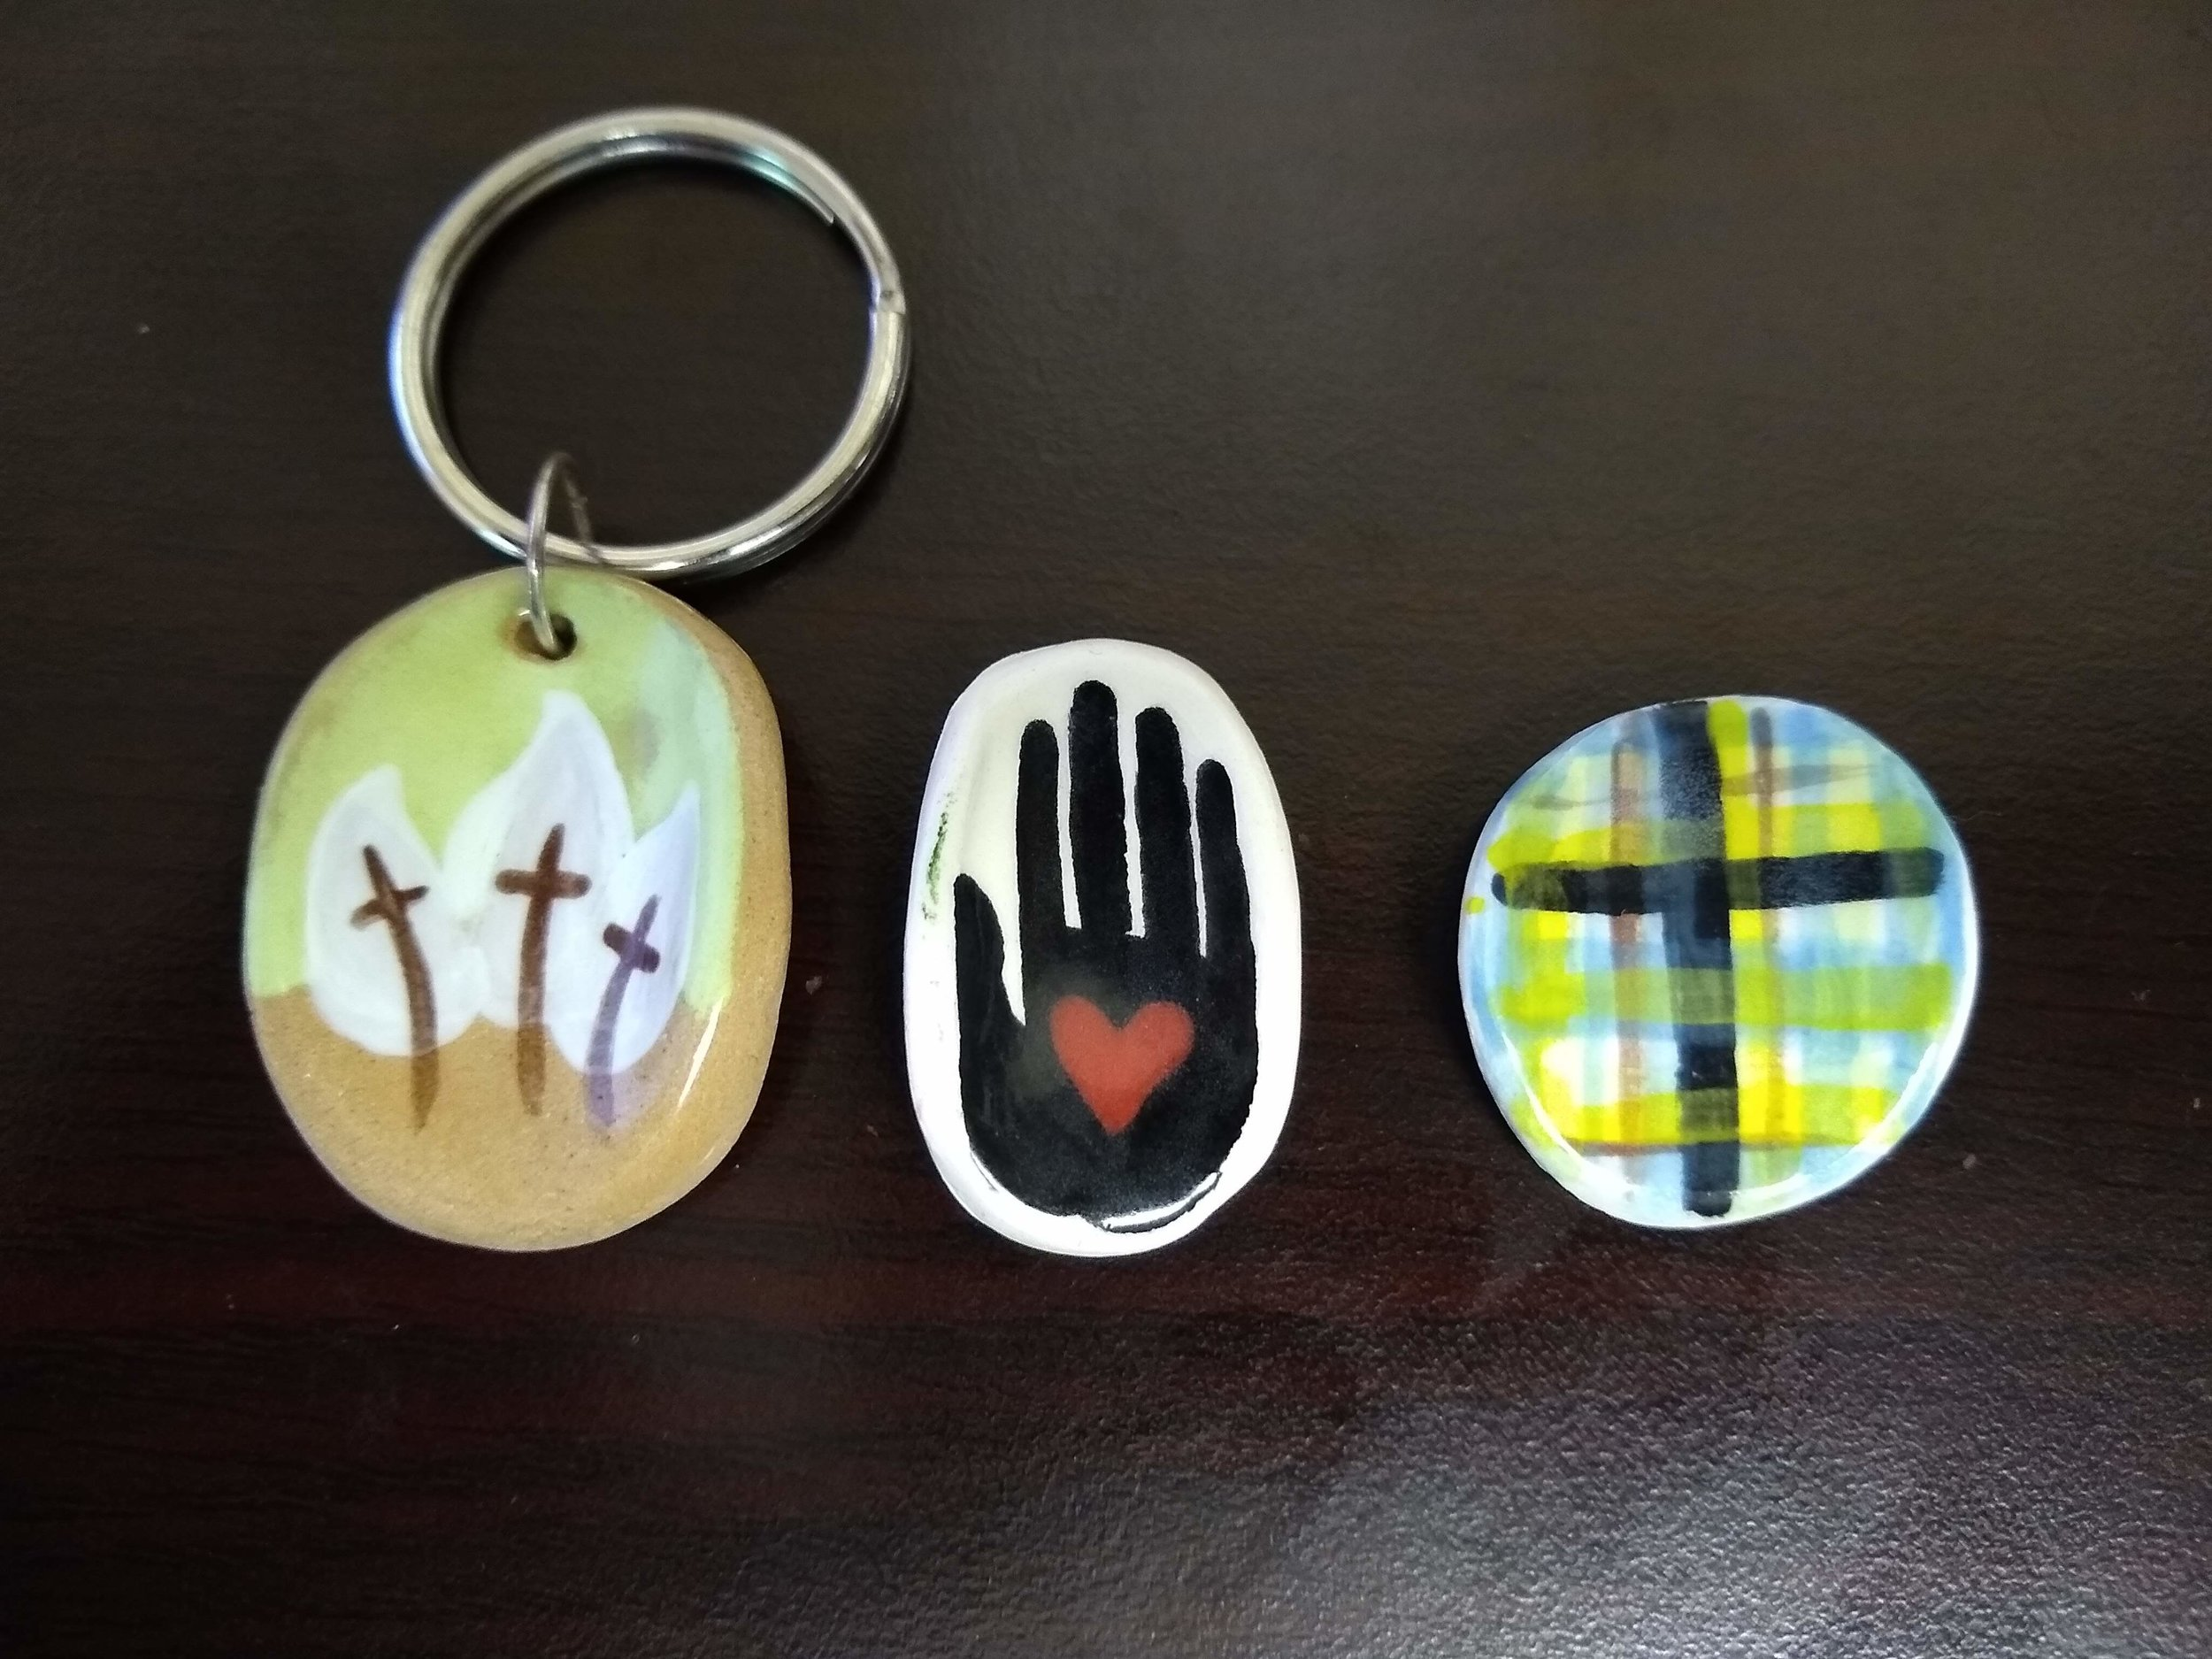 Item:  Pray Pebbles  Designs:  GEV Logo, BeLoved, Stories Woven  Price:  Suggested Donation of $4